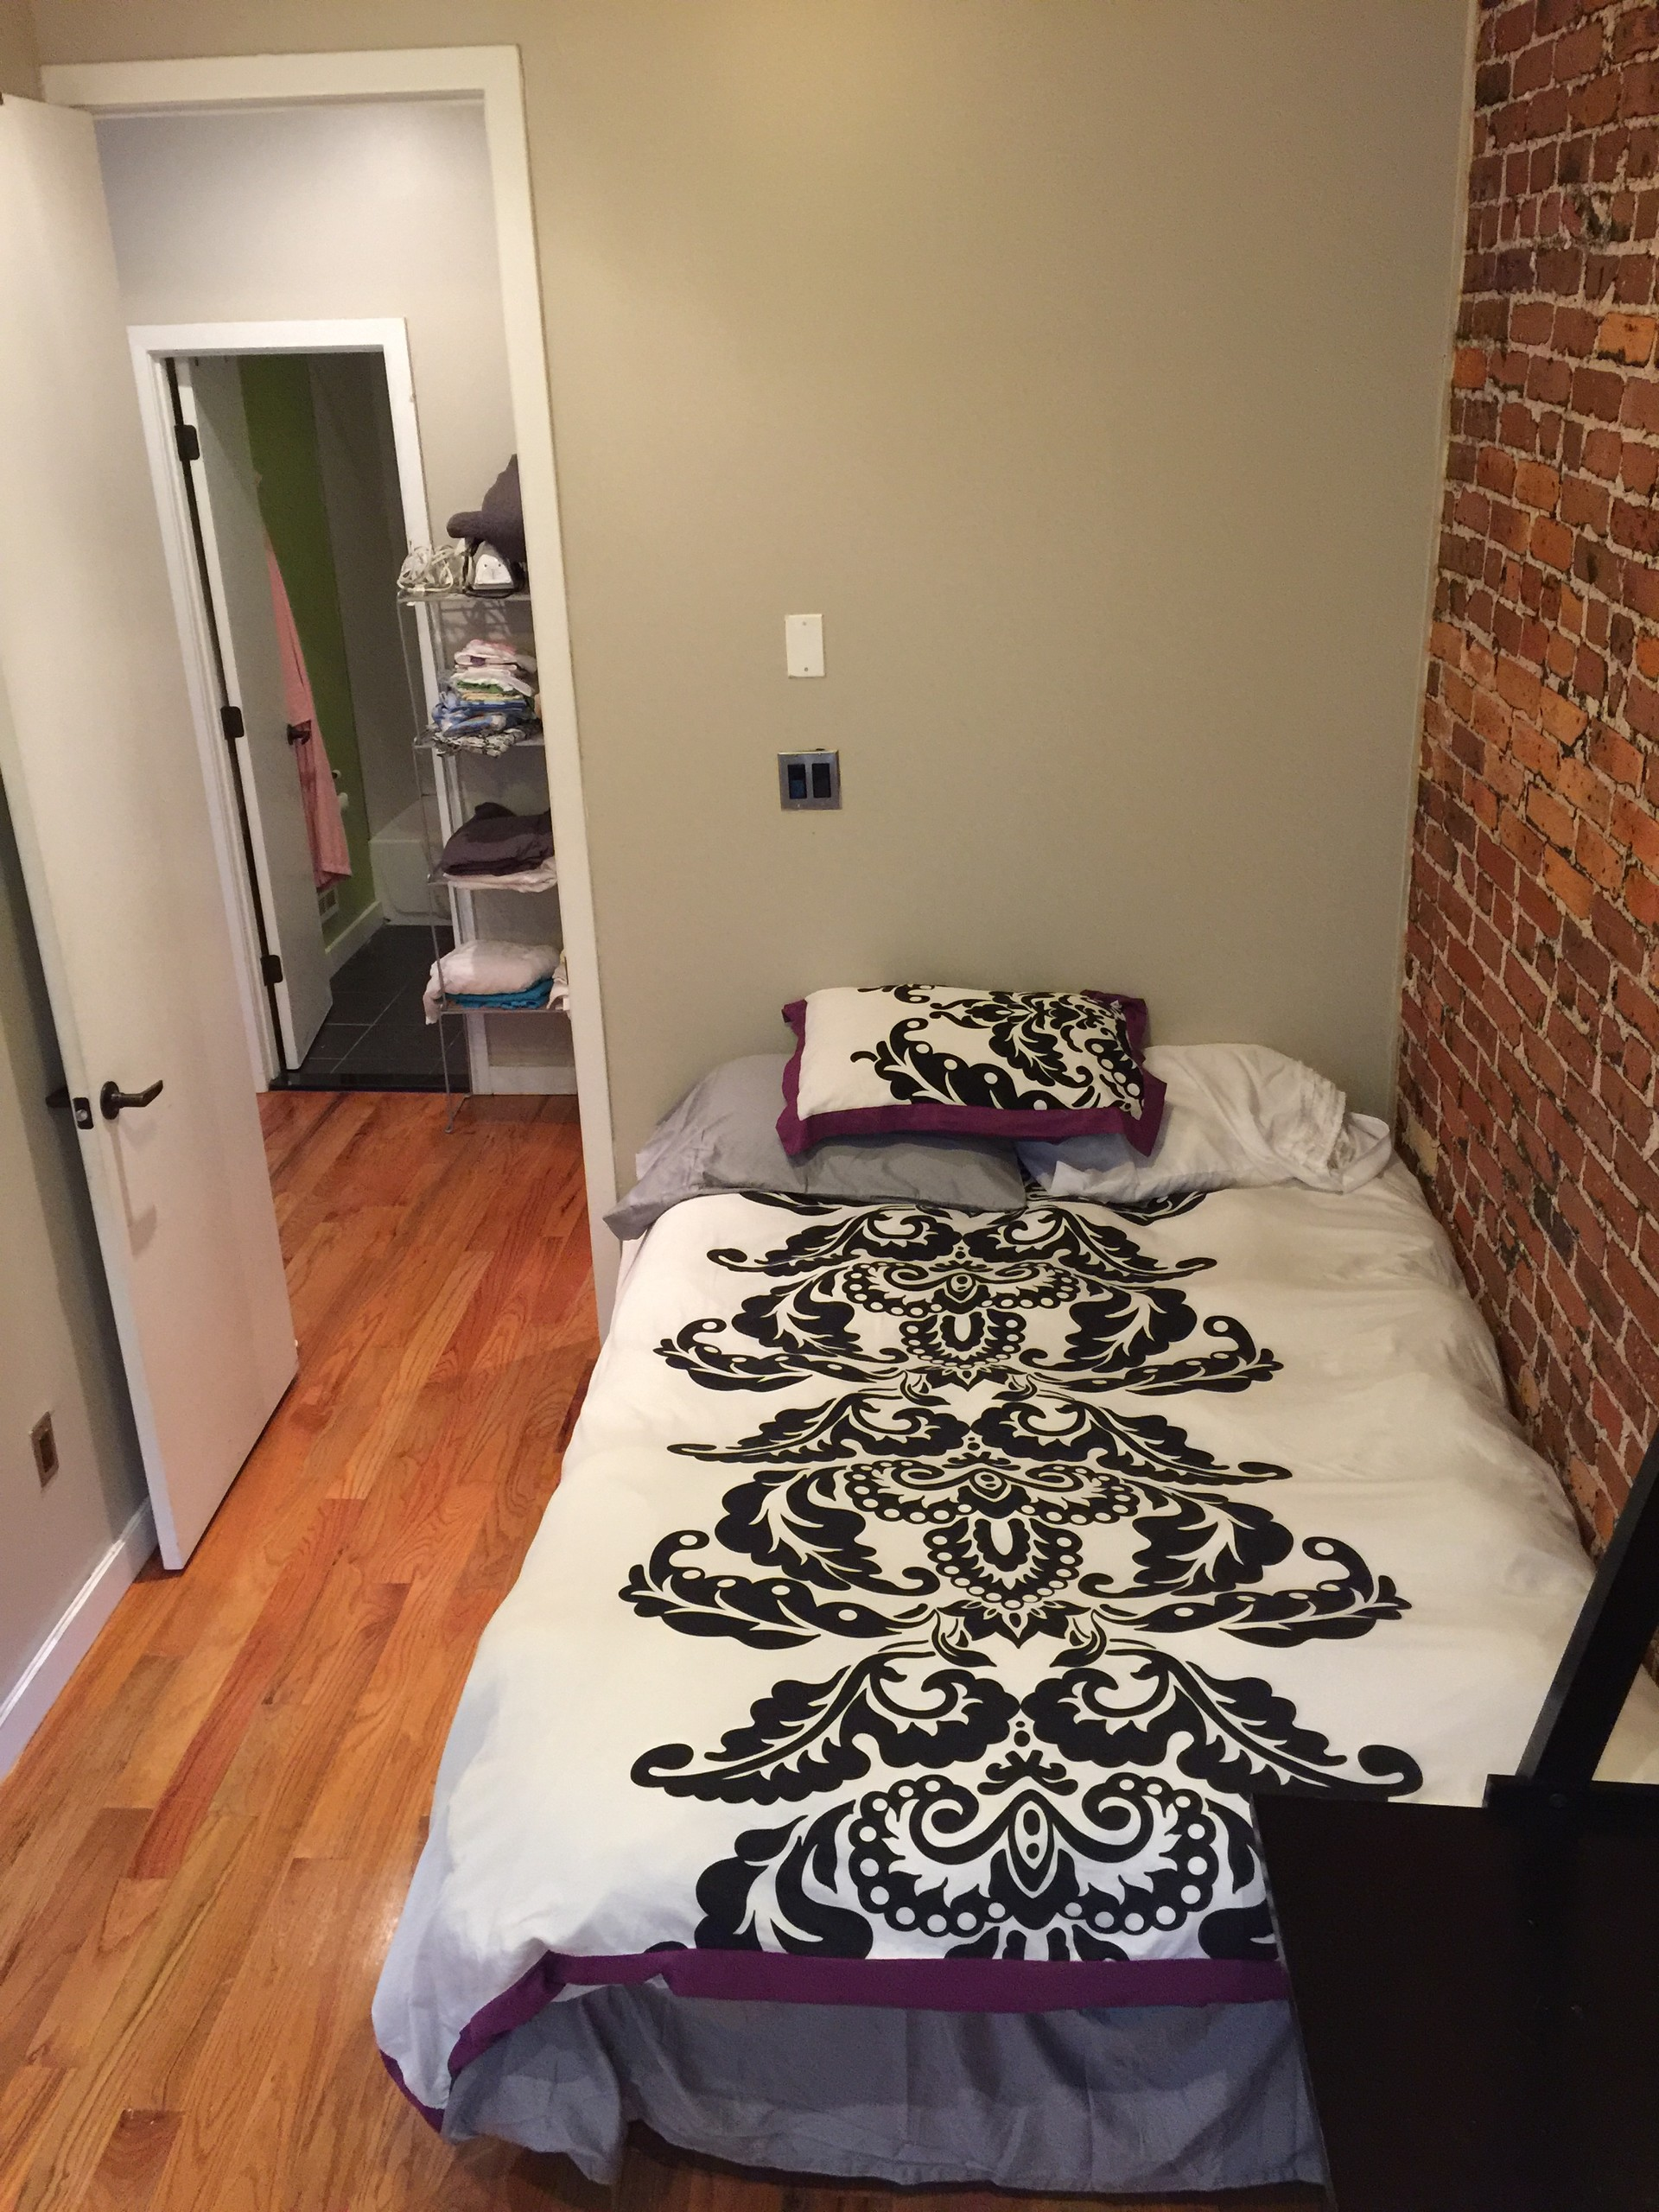 observer for rent month nyc a bath apartments room brown courtesy stevens than that more harris